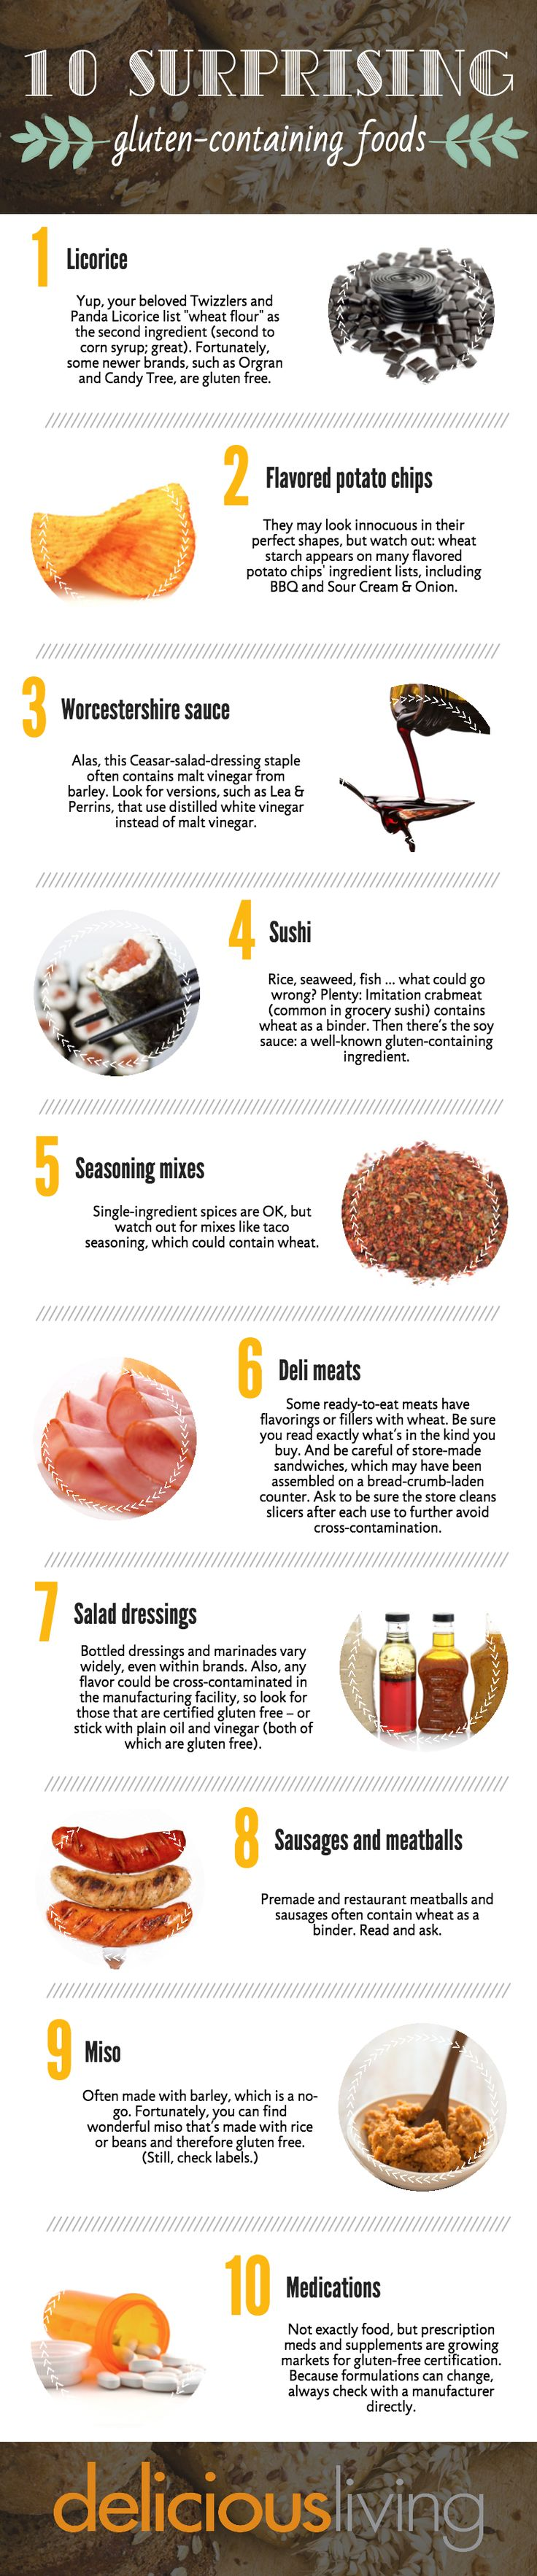 10 surprising gluten-containing foods | Gluten Free content from Delicious Living #gftips